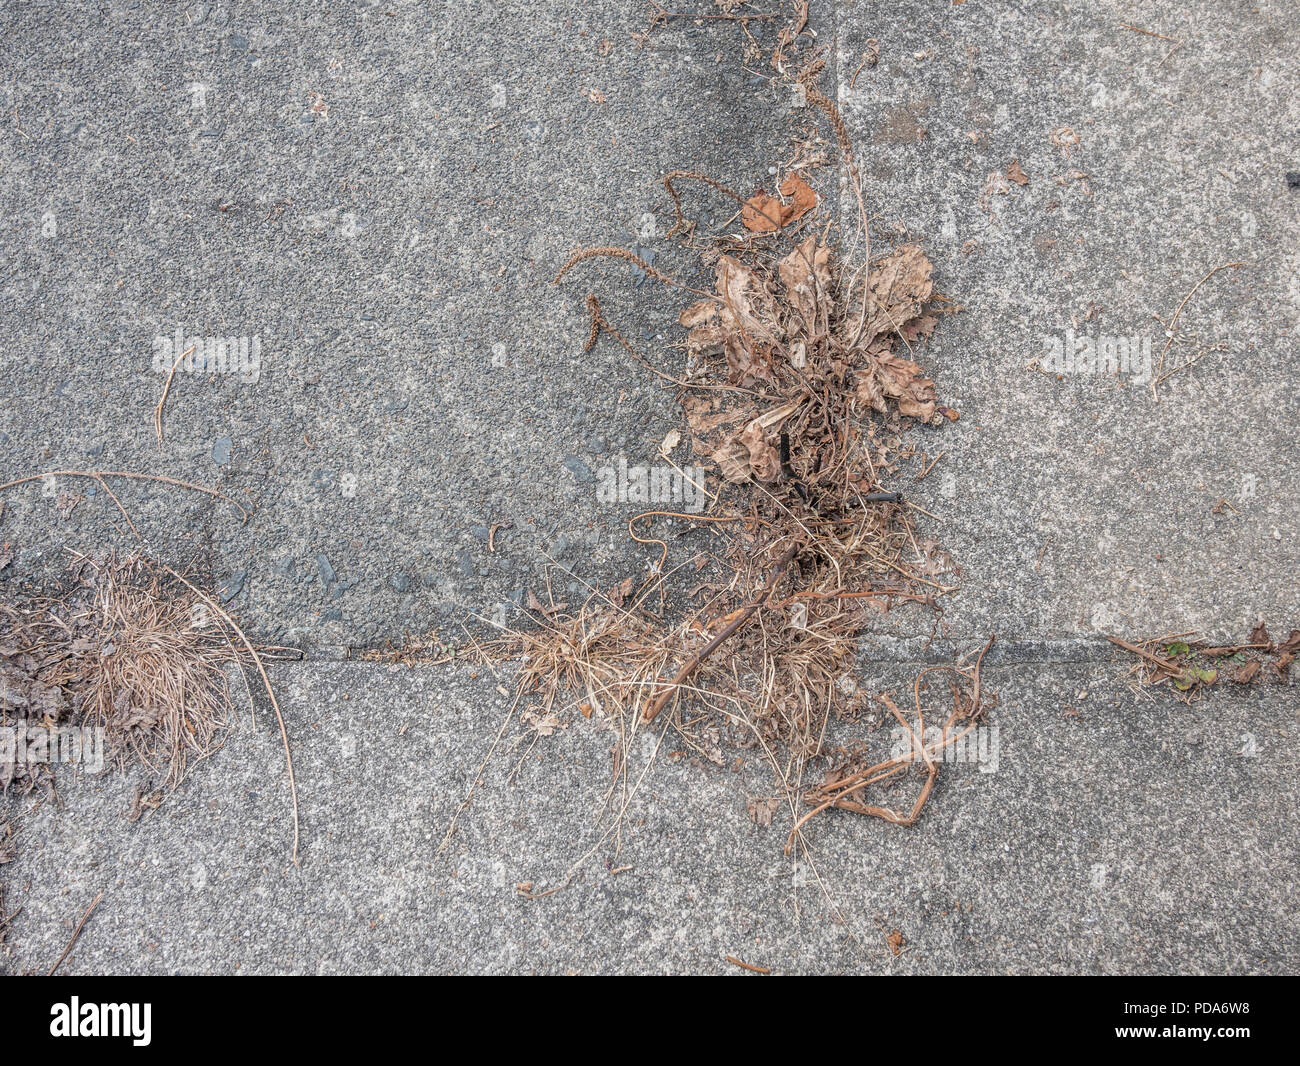 Dead weeds growing from cracks in paving stones during UK 2018 heatwave / drought - more likely killed with a weedkiller like Roundup / glyphosate. - Stock Image